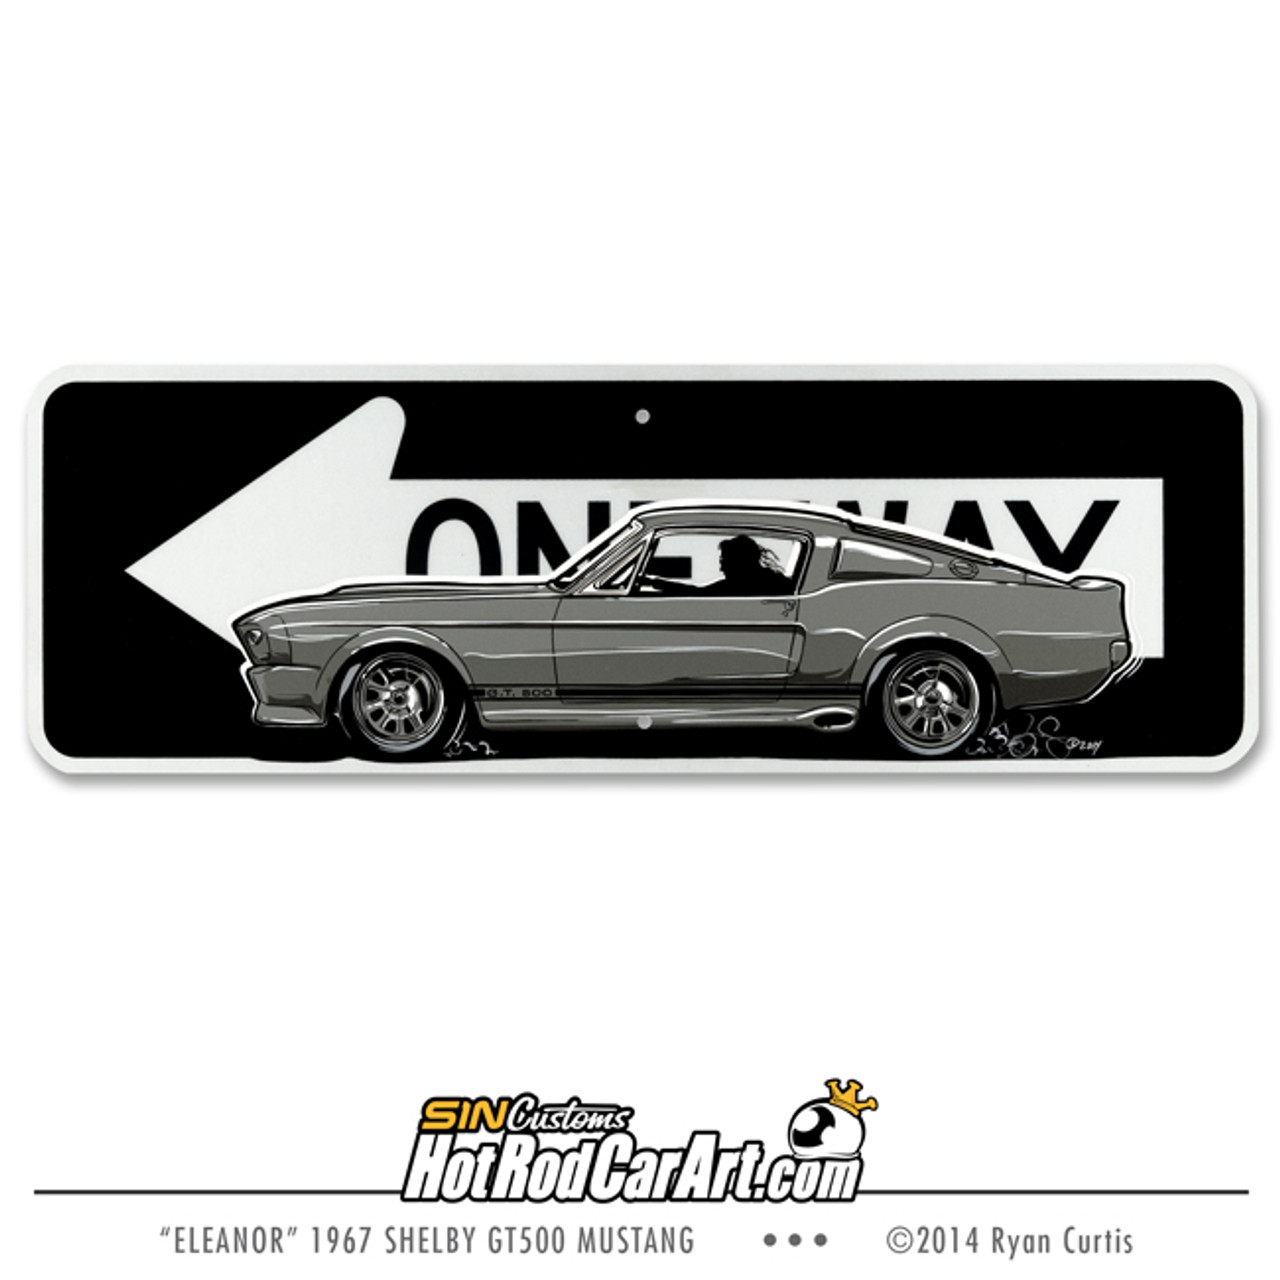 Eleanor - 1967 Shelby GT 500 Mustang- Original Painting